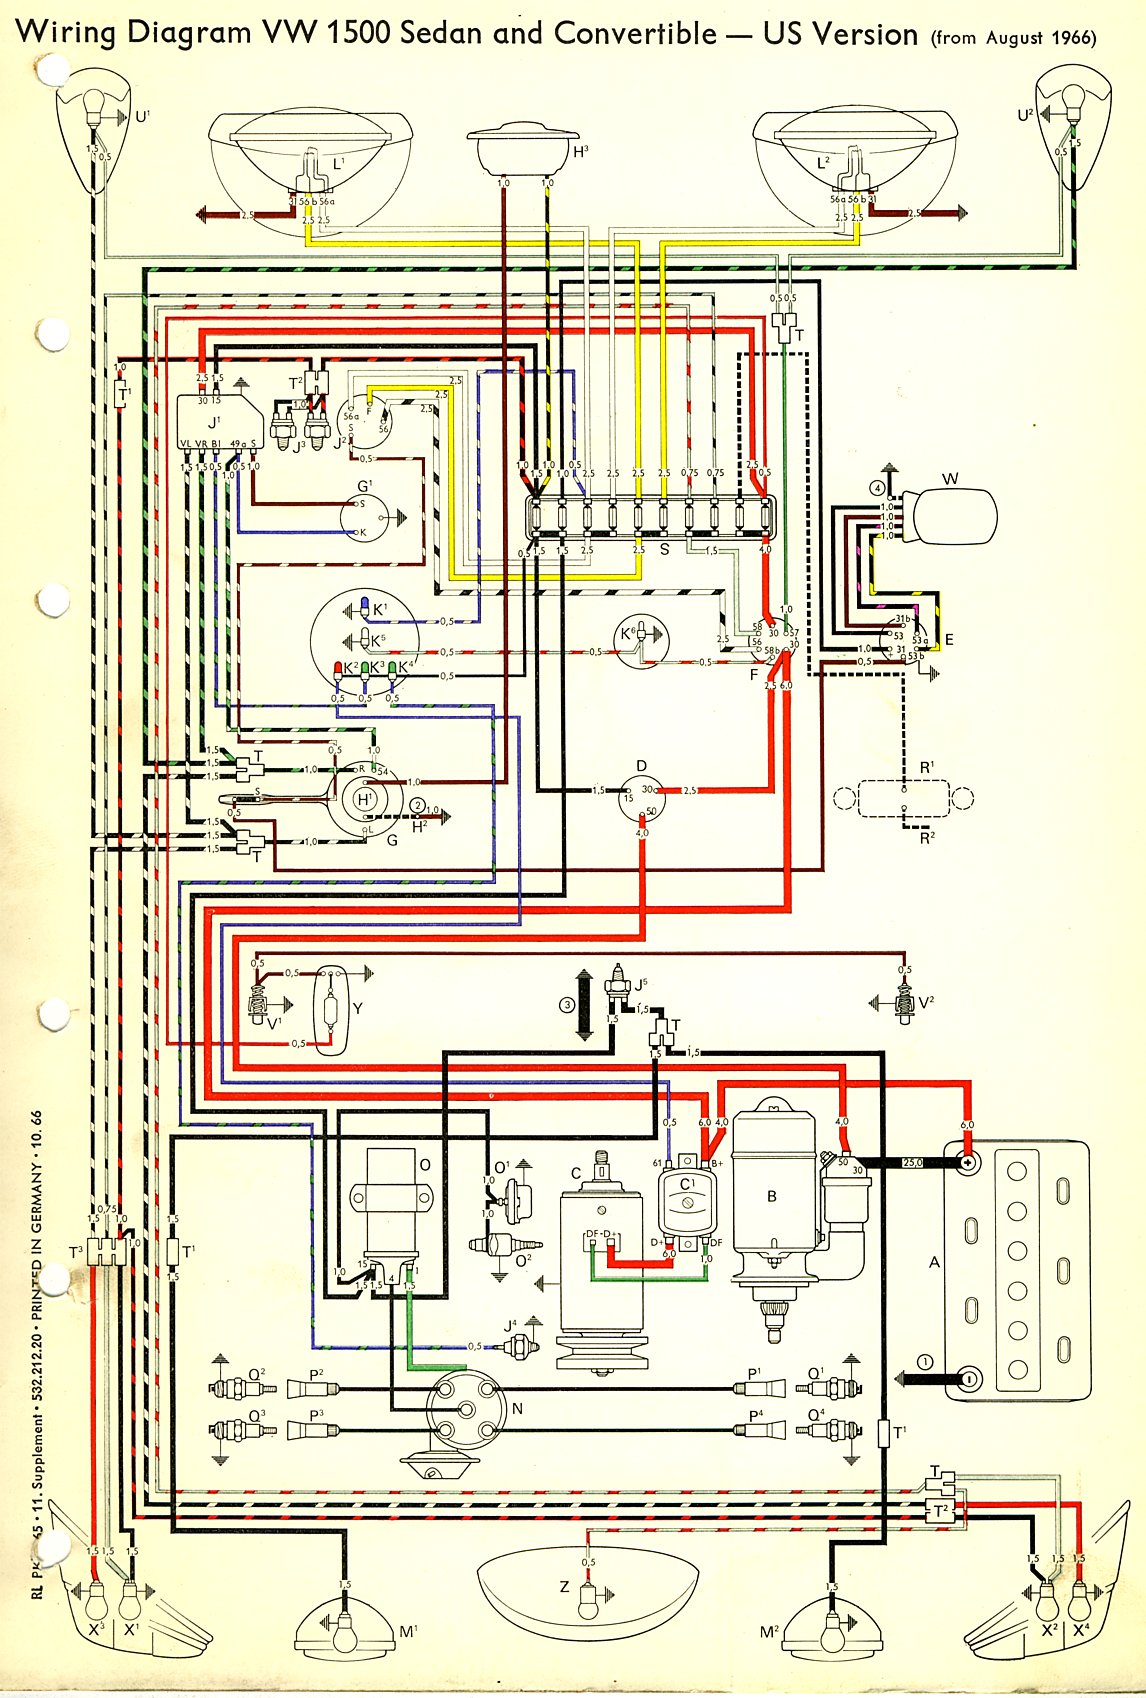 thesamba com type 1 wiring diagrams rh thesamba com 1966 vw bug wiring  diagram 1968 vw